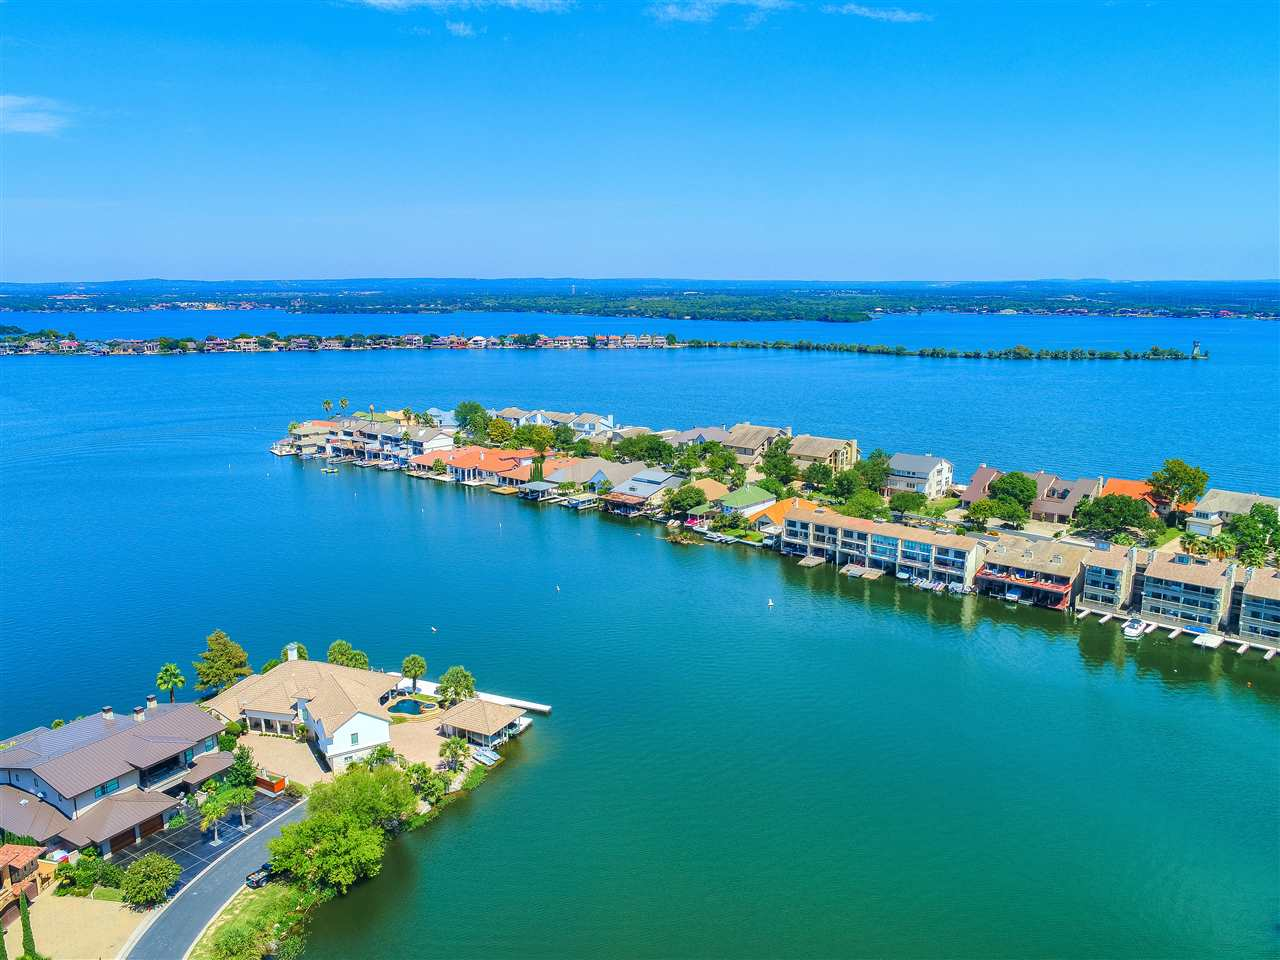 1104 The Cape #5 Horseshoe Bay Real Estate Home Listings - RE/MAX Horseshoe Bay Resort Sales, Co. Lake LBJ Real Estate